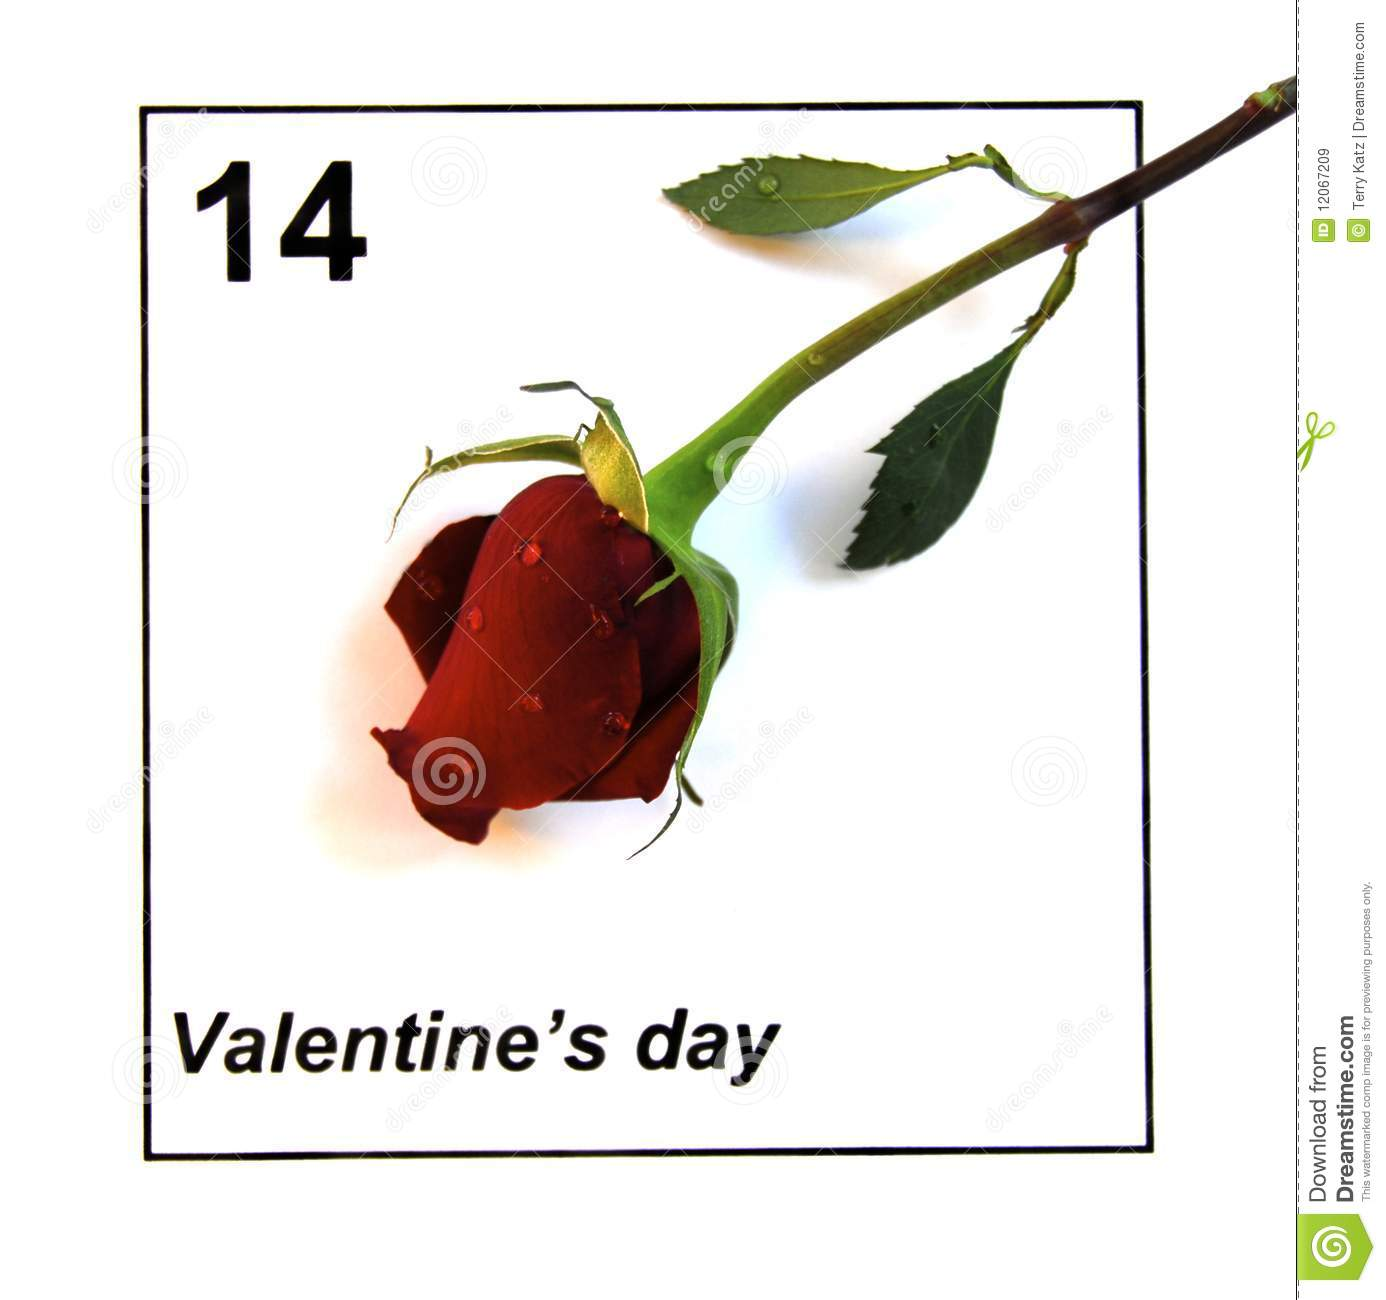 Calendar Rose Day : Valentines day calendar with single rose royalty free